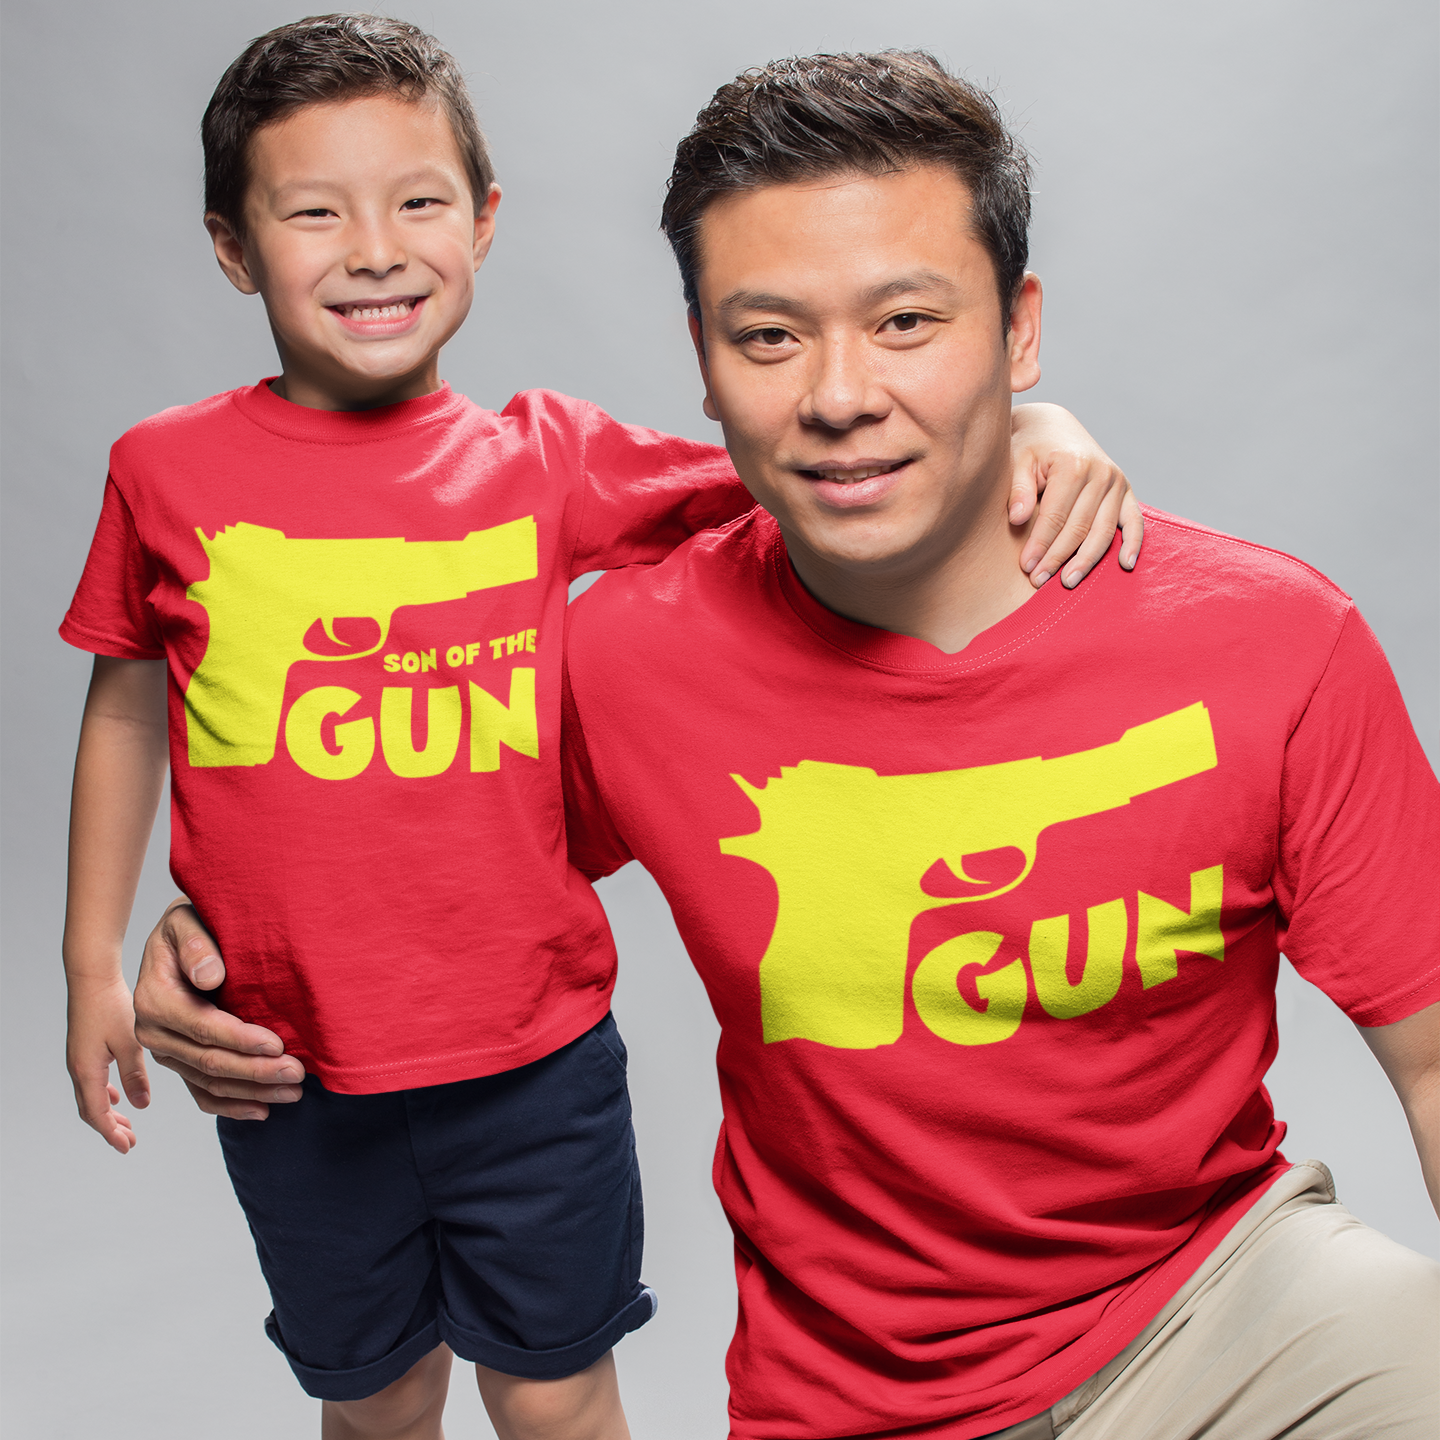 Sprinklecart Gun Son of The Gun Printed Matching T Shirt | Red Cotton T Shirt for Dad and Son